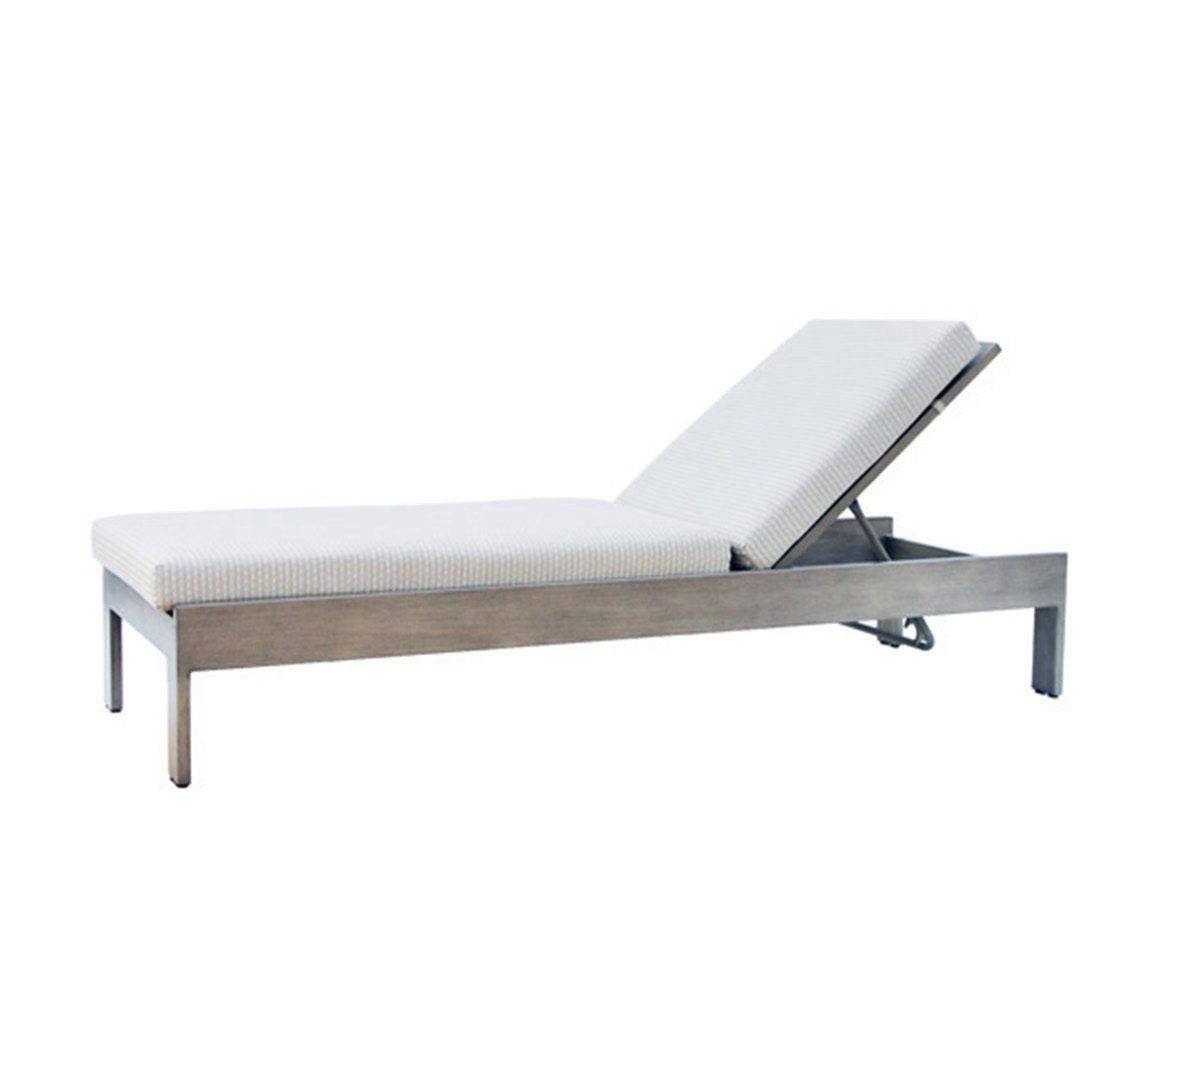 Park Lane adjustable lounger in taupe metal frame with cream cushion